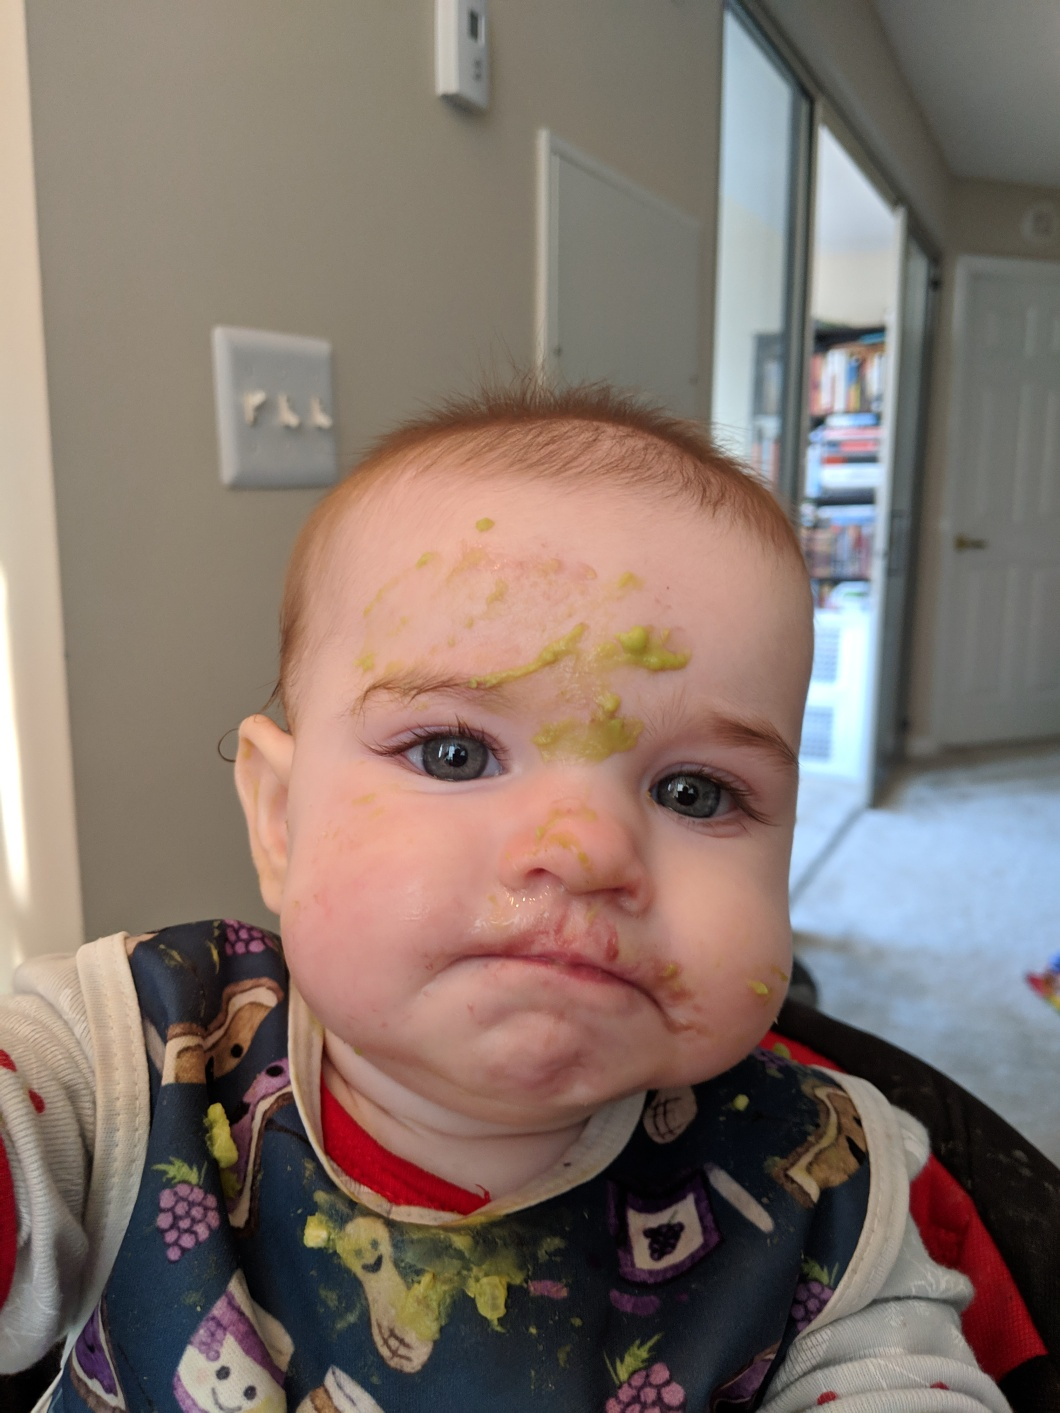 Avocado Face (MP, 2019)